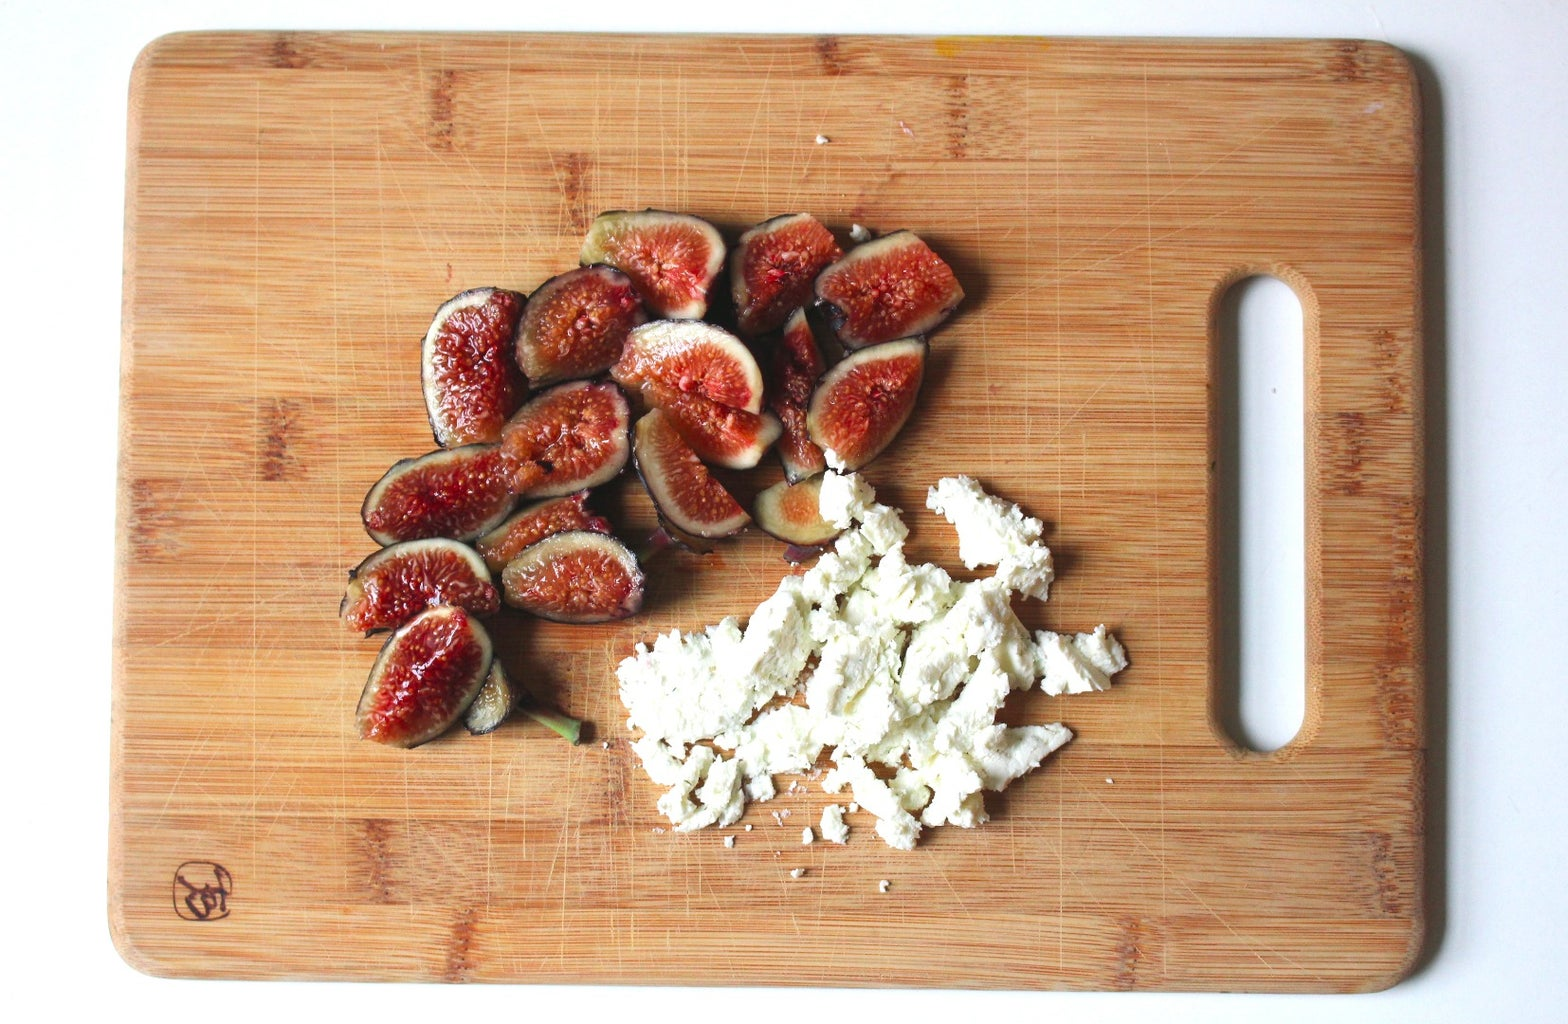 Dice Up Figs and Goat Cheese, Into Sizable Bites